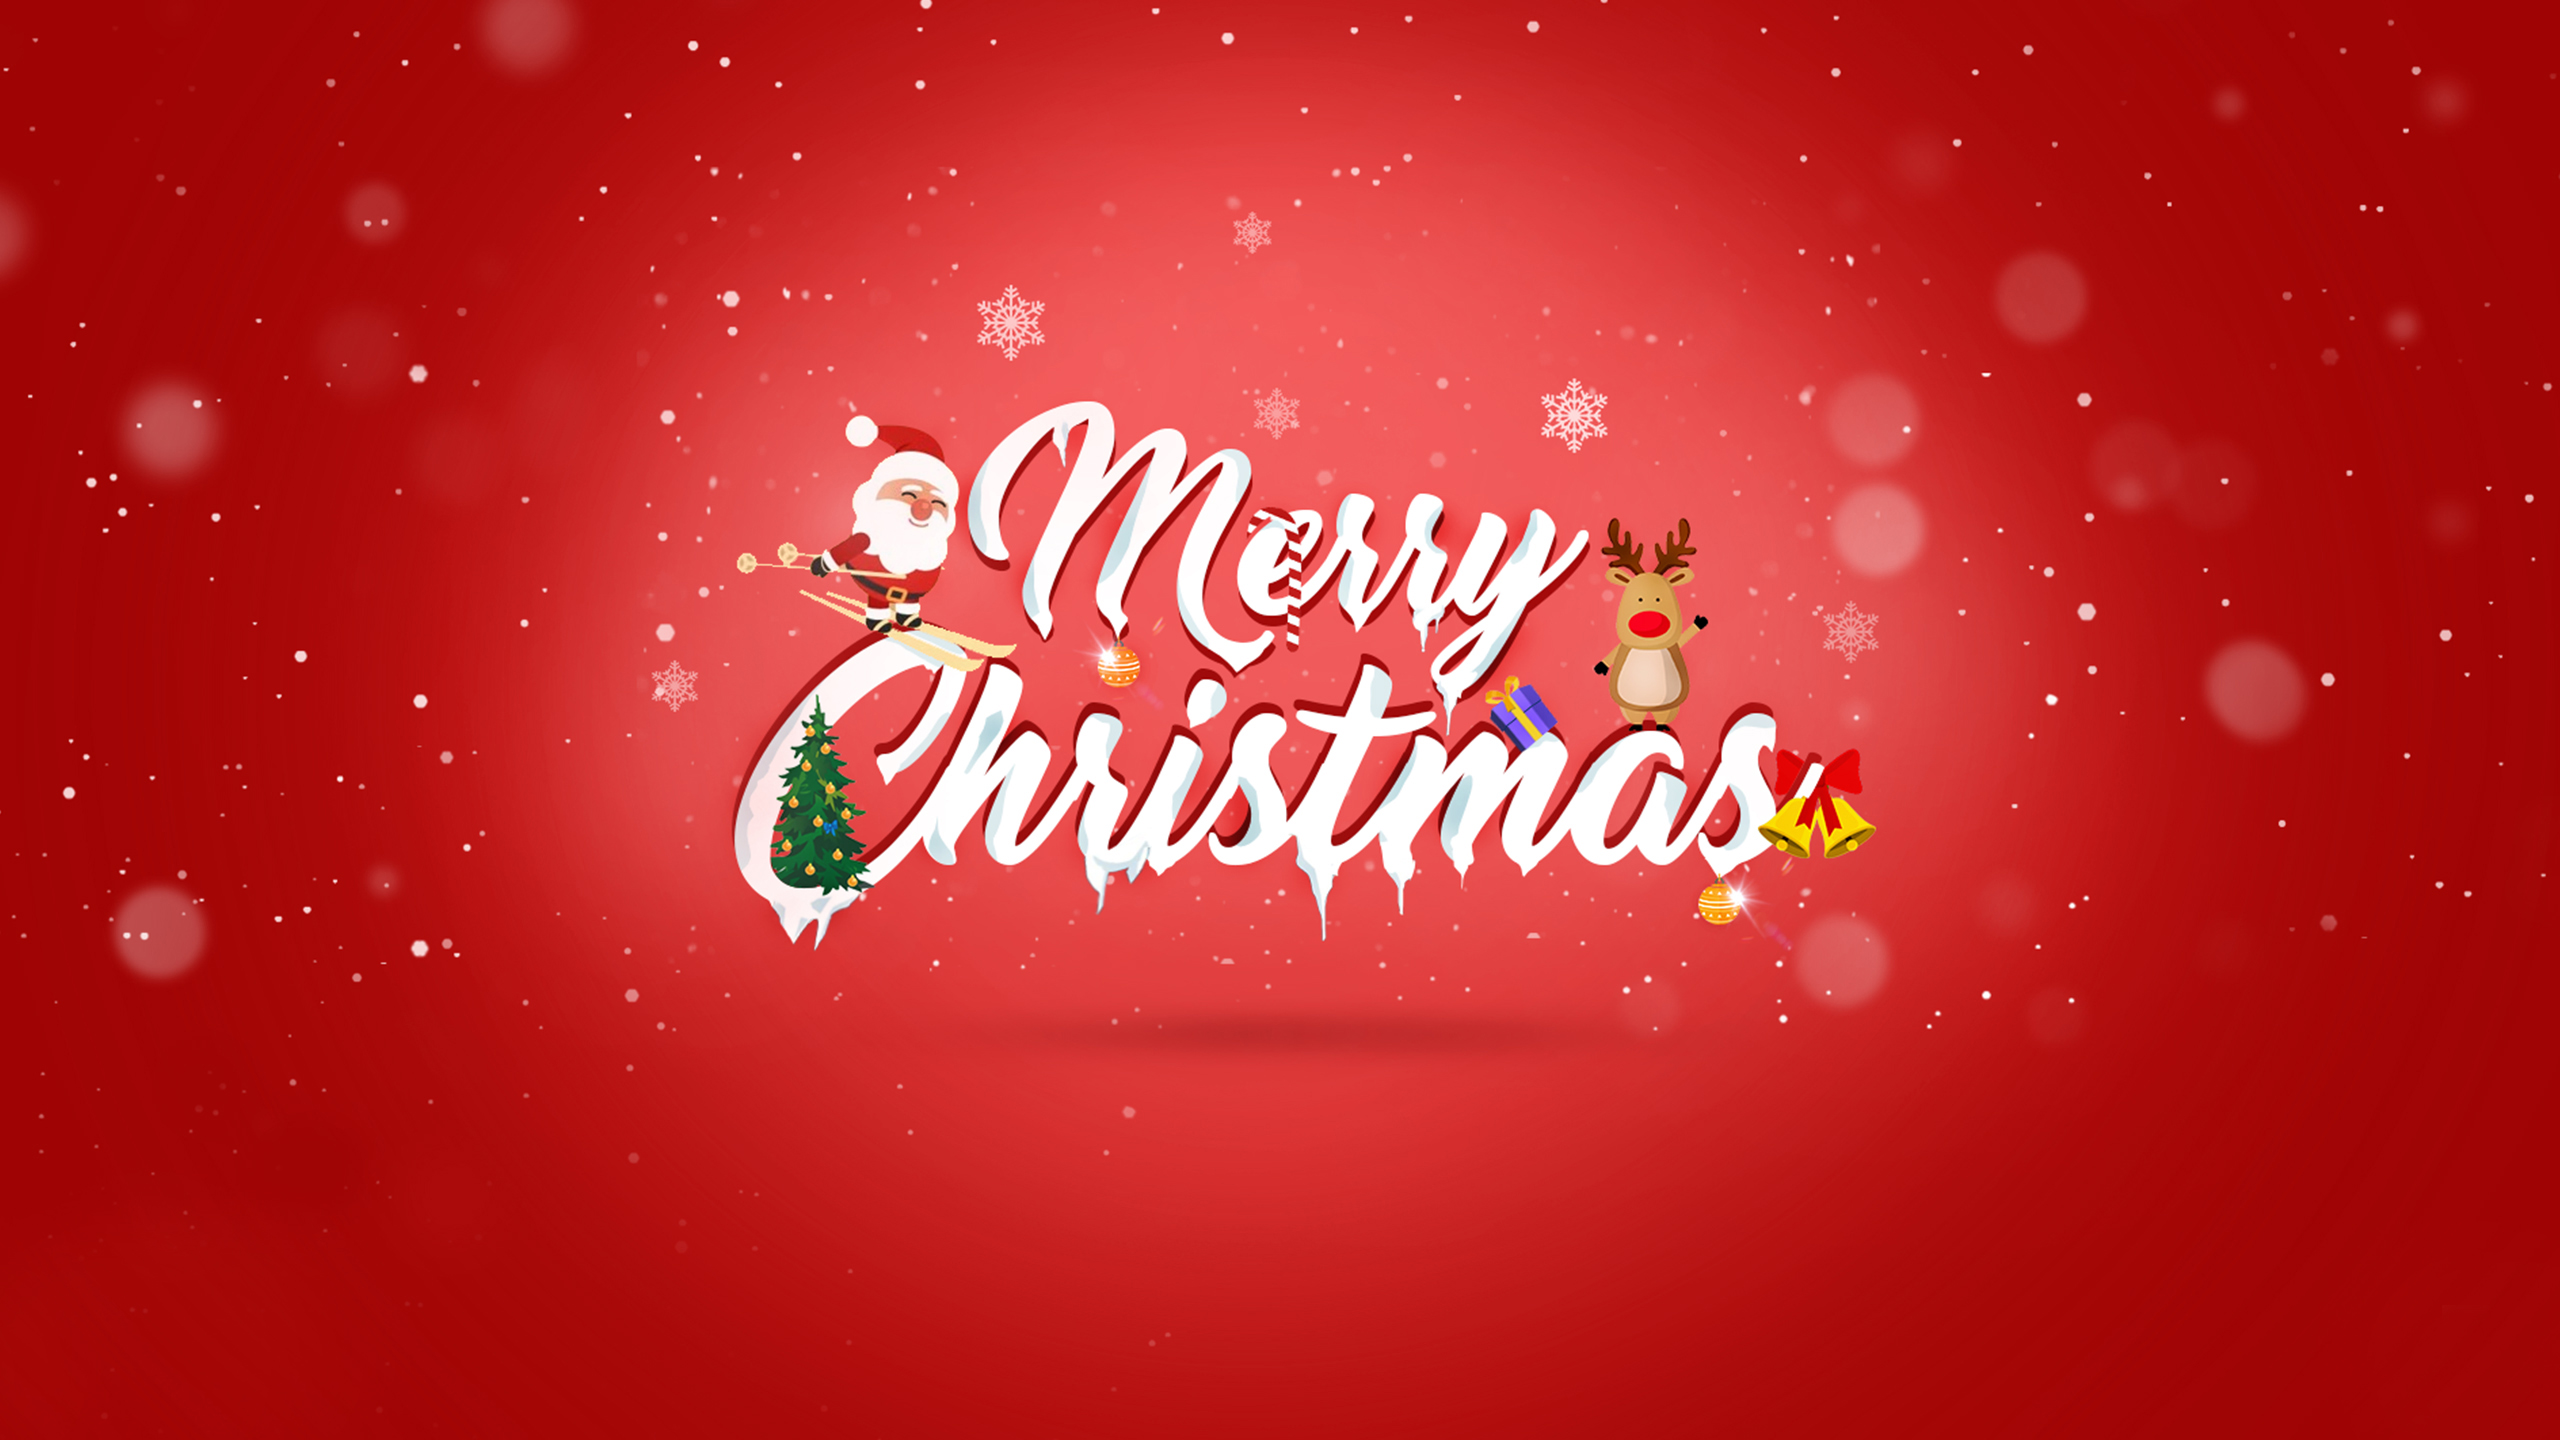 Merry Christmas 2018 Wallpapers